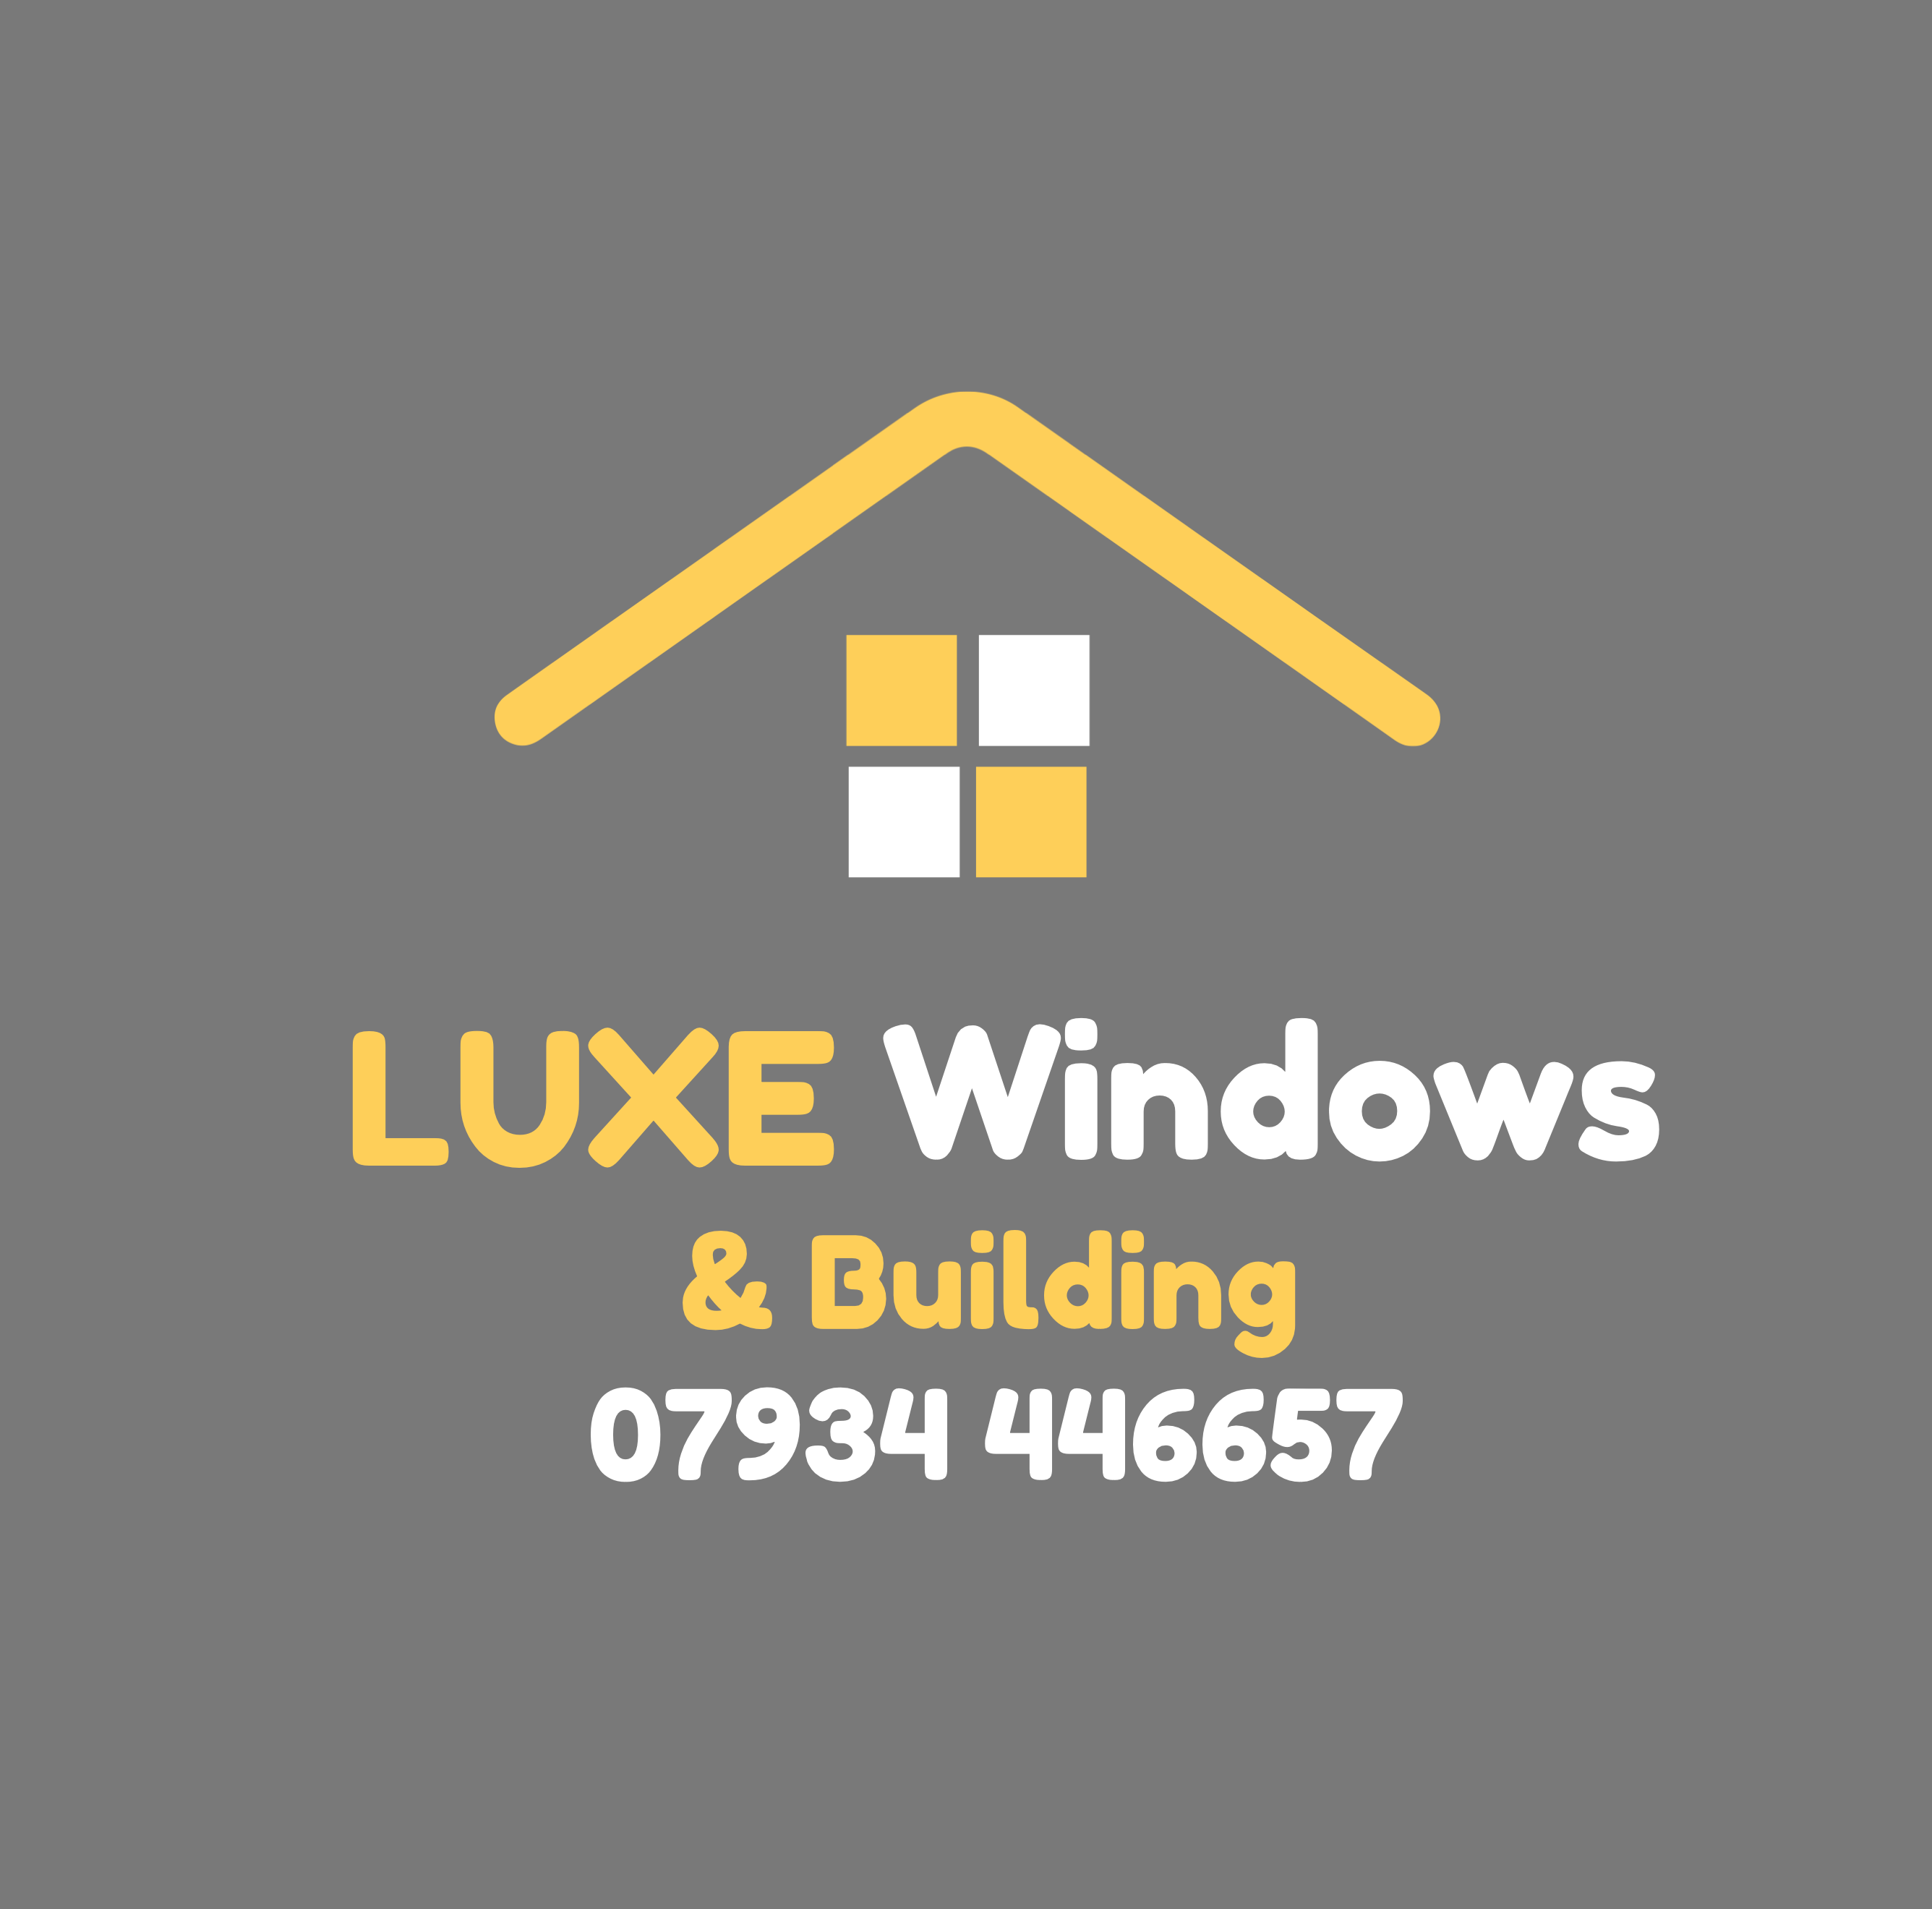 LUXE Windows & Building Verified Logo